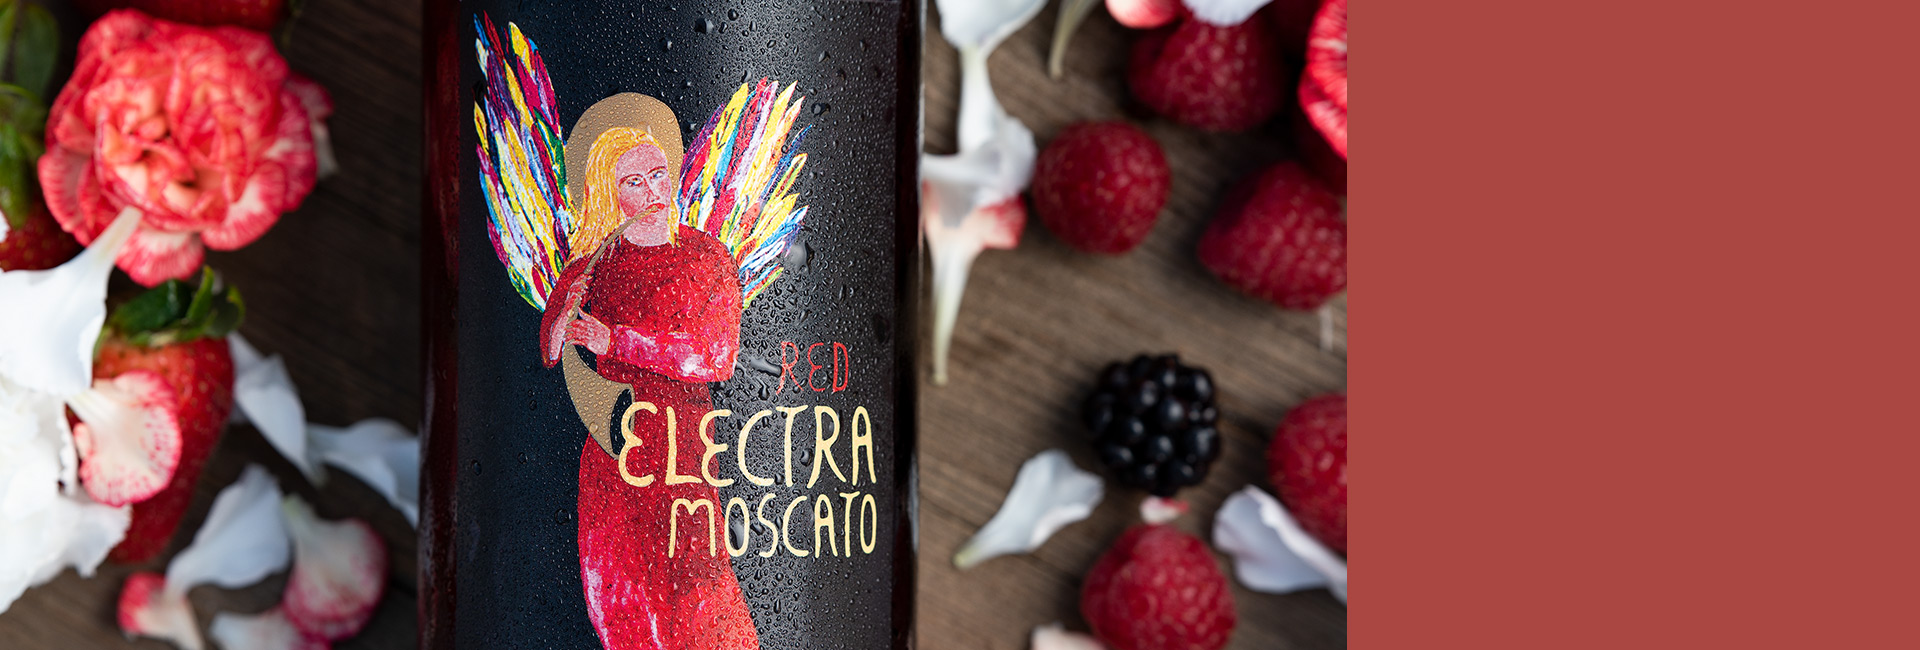 Red Electra Moscato Wine with new label and packaging surrounded by flowers, raspberries and strawberries